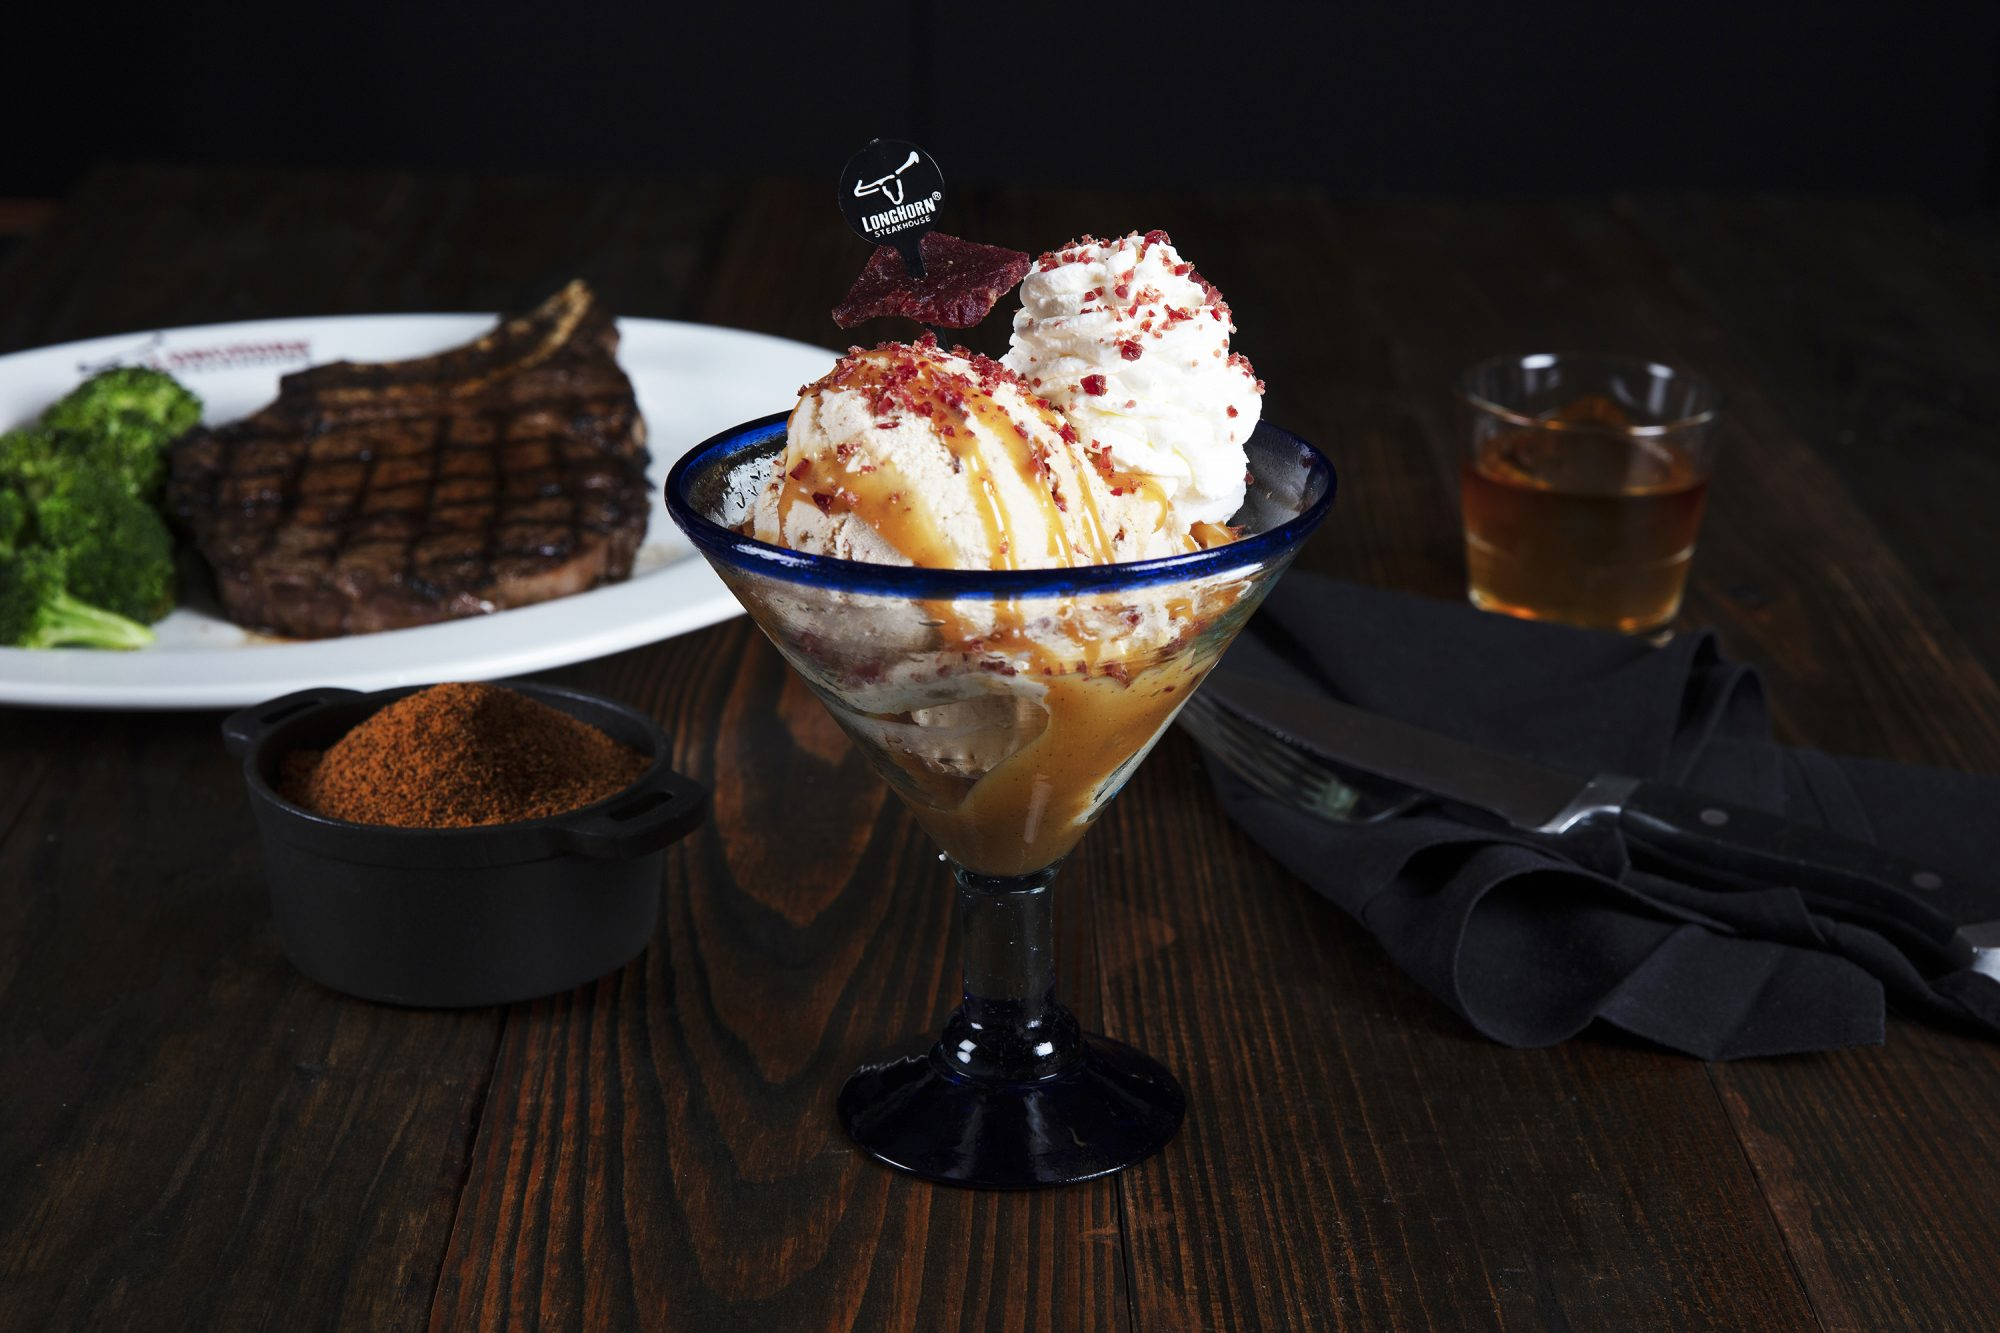 Longhorn steak and bourbon ice cream